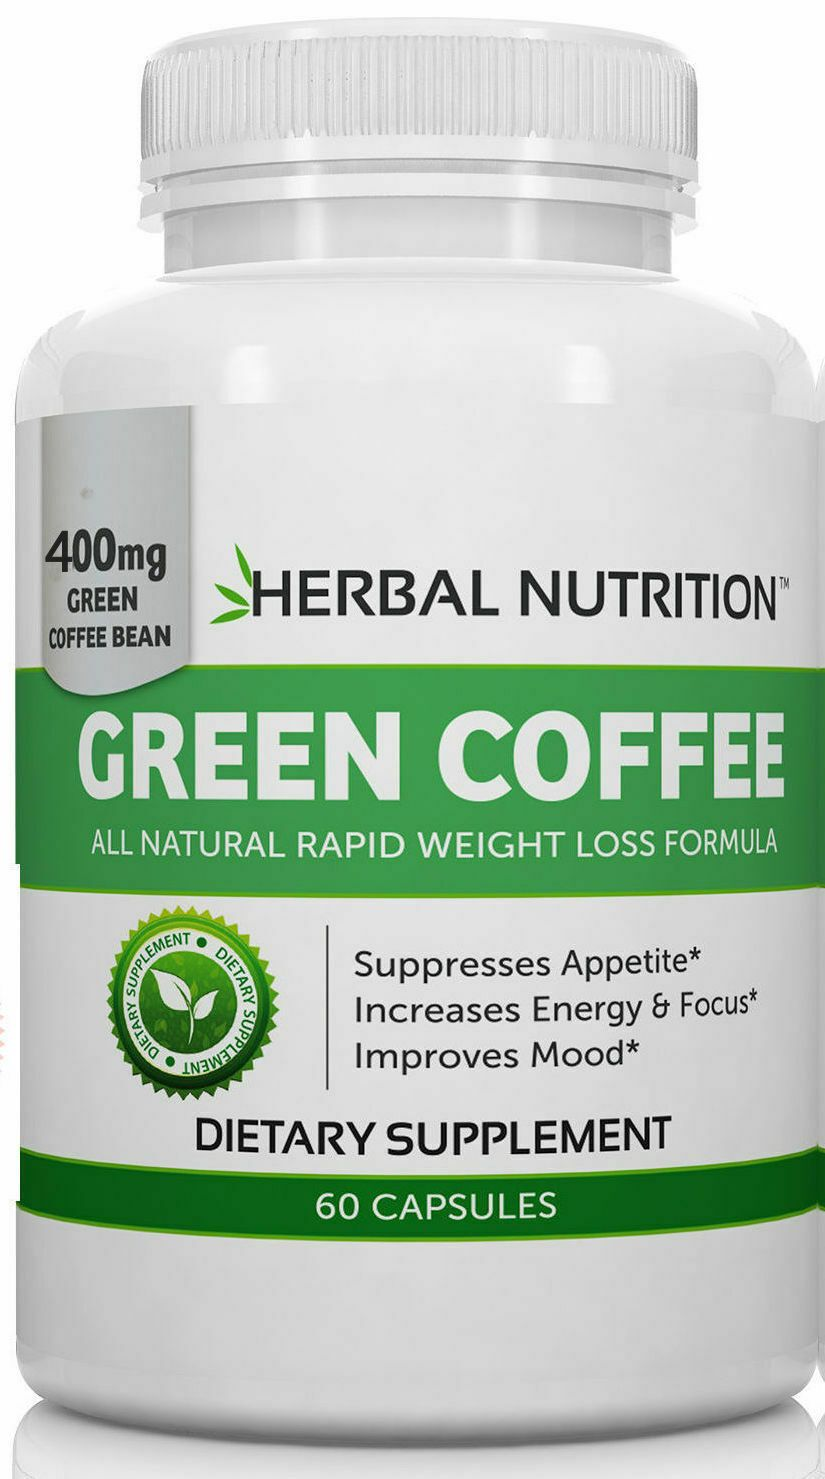 Pure Green Coffee Bean Extract MultiLevel Dosing 400mg